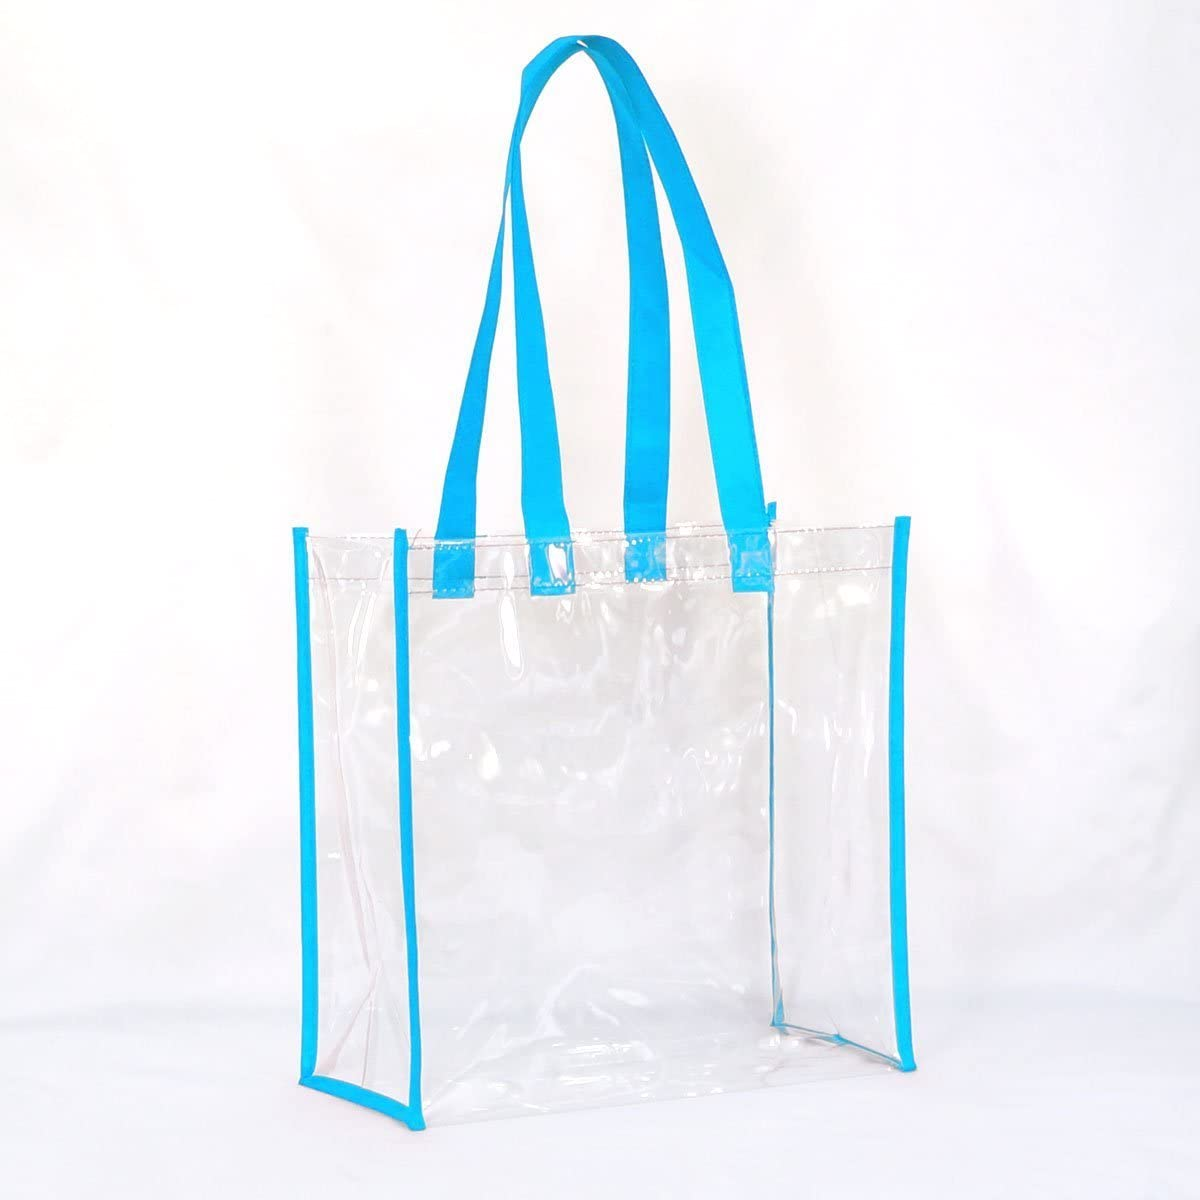 NFL Football Stadium Approved with Handles 12x12x6 for Men and Women Beach Tote Clear Vinyl with Colored Trim BagsOnTheNet Large Clear Tote Bag